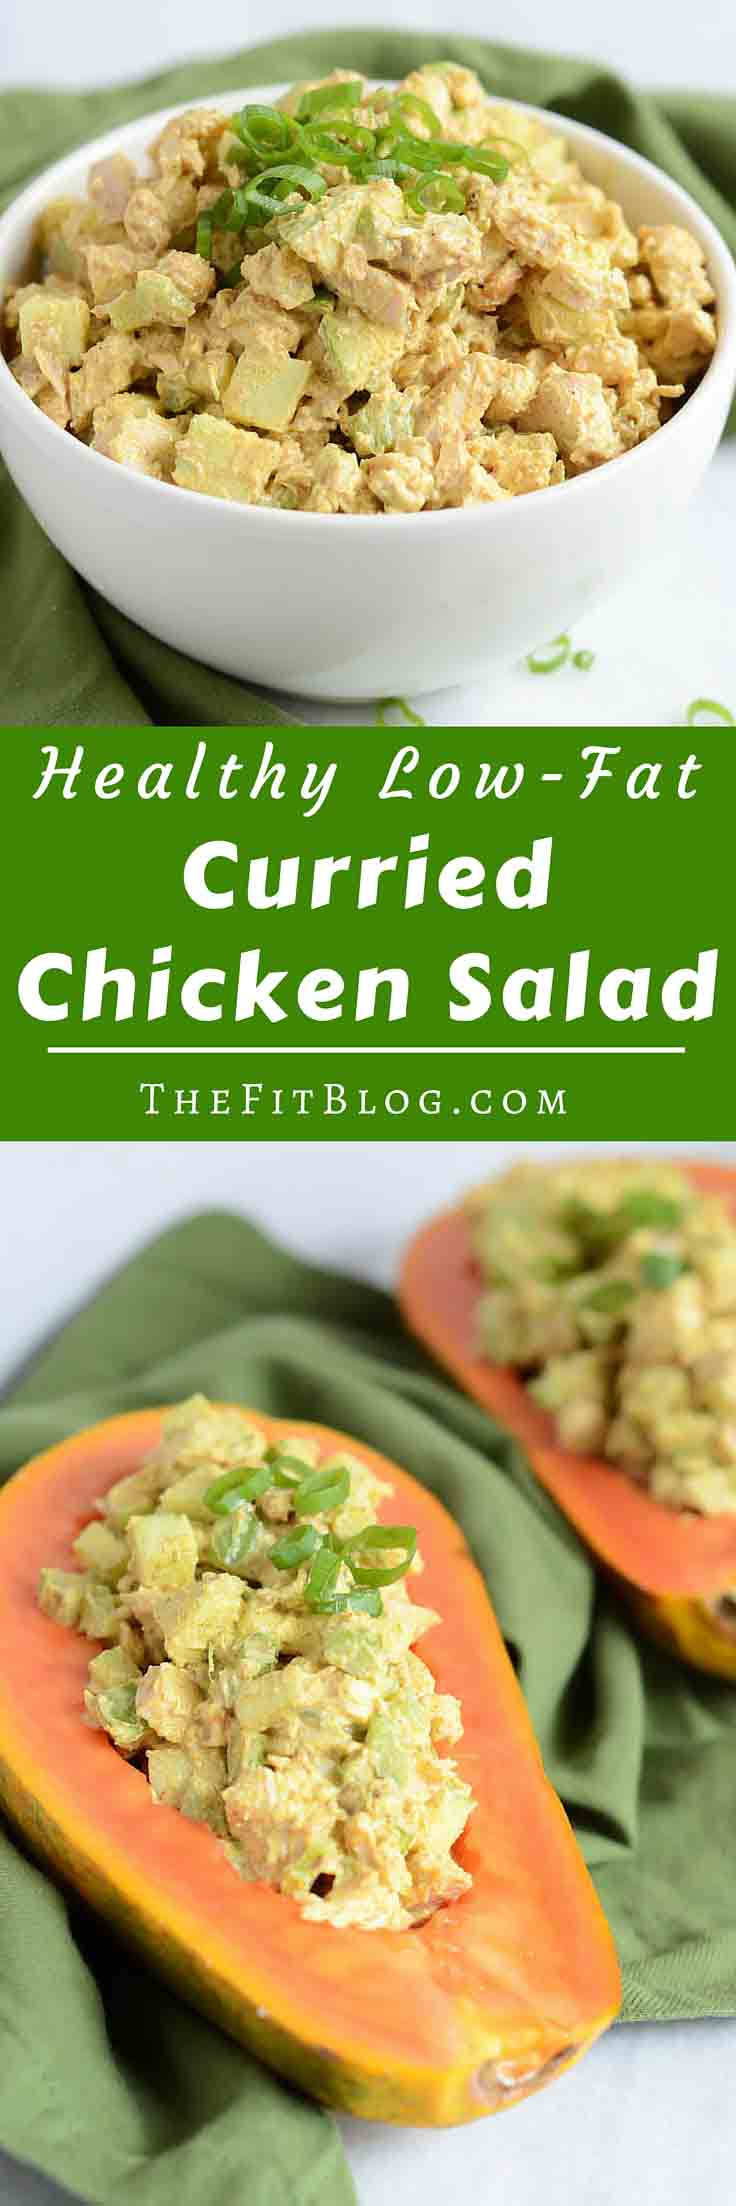 This Healthy Curried Chicken Salad with Apples is a healthier (and tastier) low-fat version of the classic chicken salad.